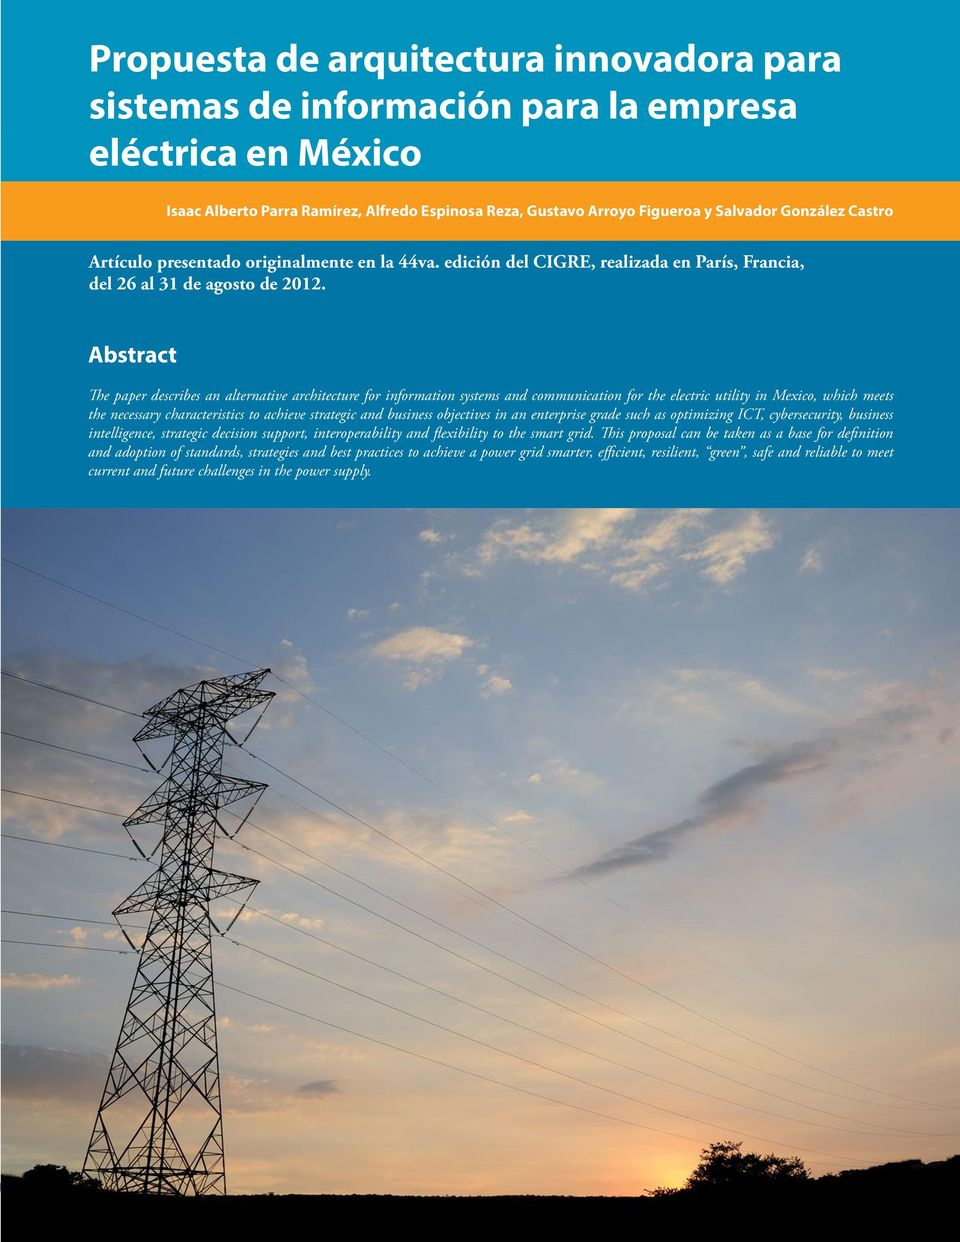 Abstract The paper describes an alternative architecture for information systems and communication for the electric utility in Mexico, which meets the necessary characteristics to achieve strategic